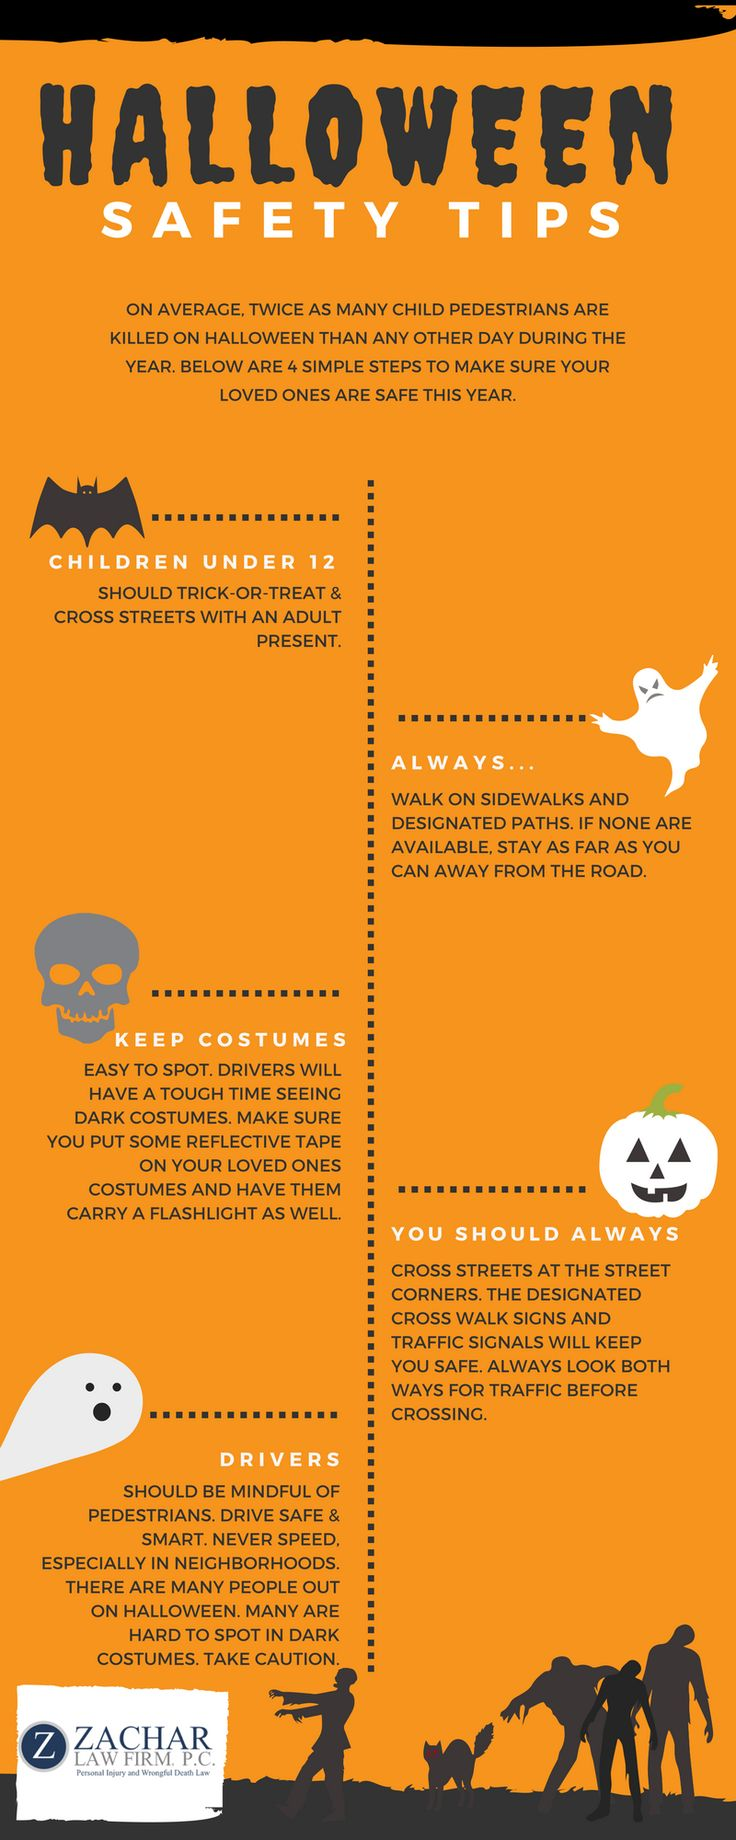 Gmail themes halloween - Halloween Safety Tips Every Parent Should Know Infographic